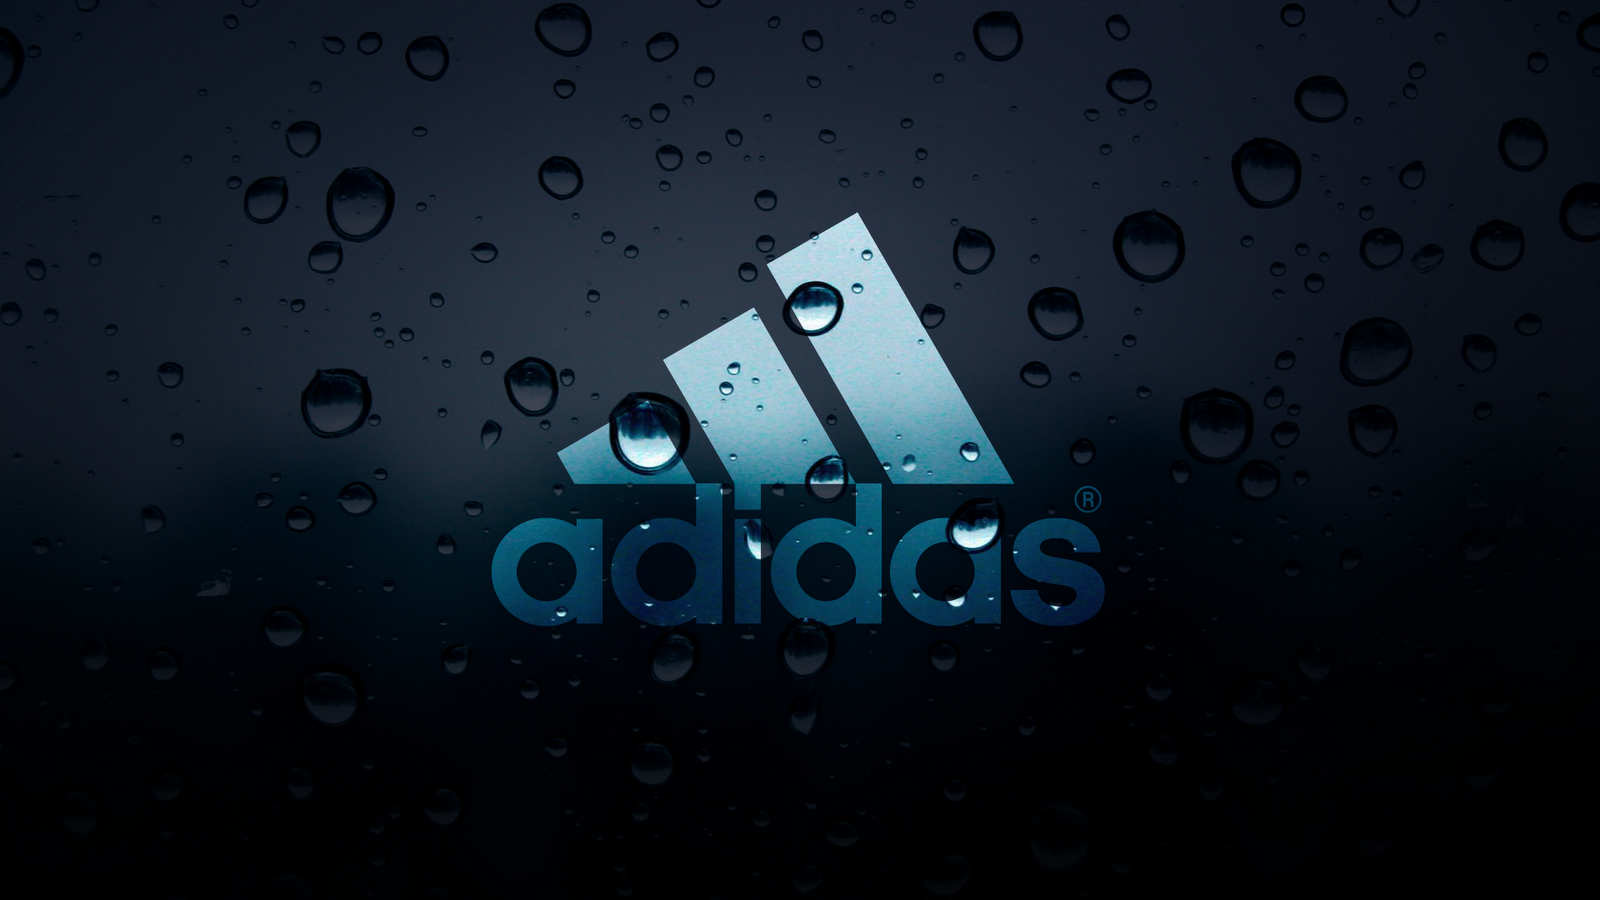 Adidas Water Drops Wallpaper 1600x900